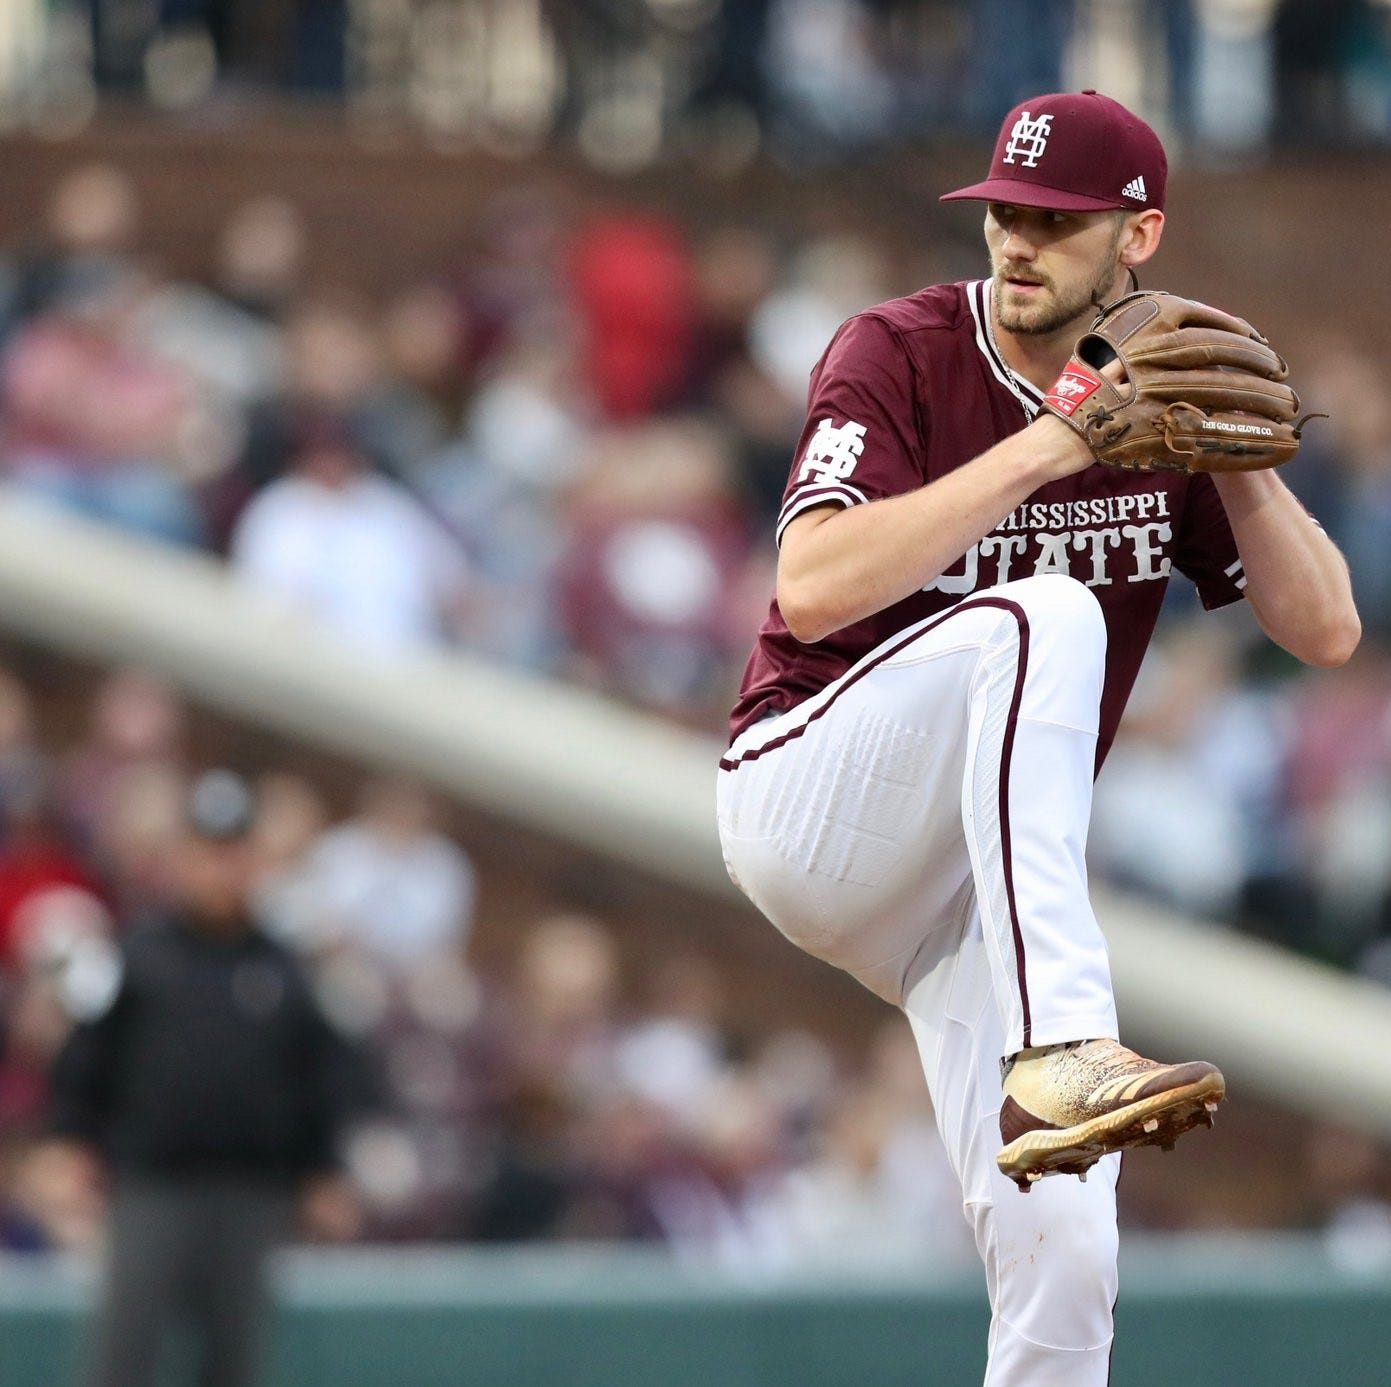 Mississippi State baseball kicks off Super Bulldog Weekend by beating Alabama